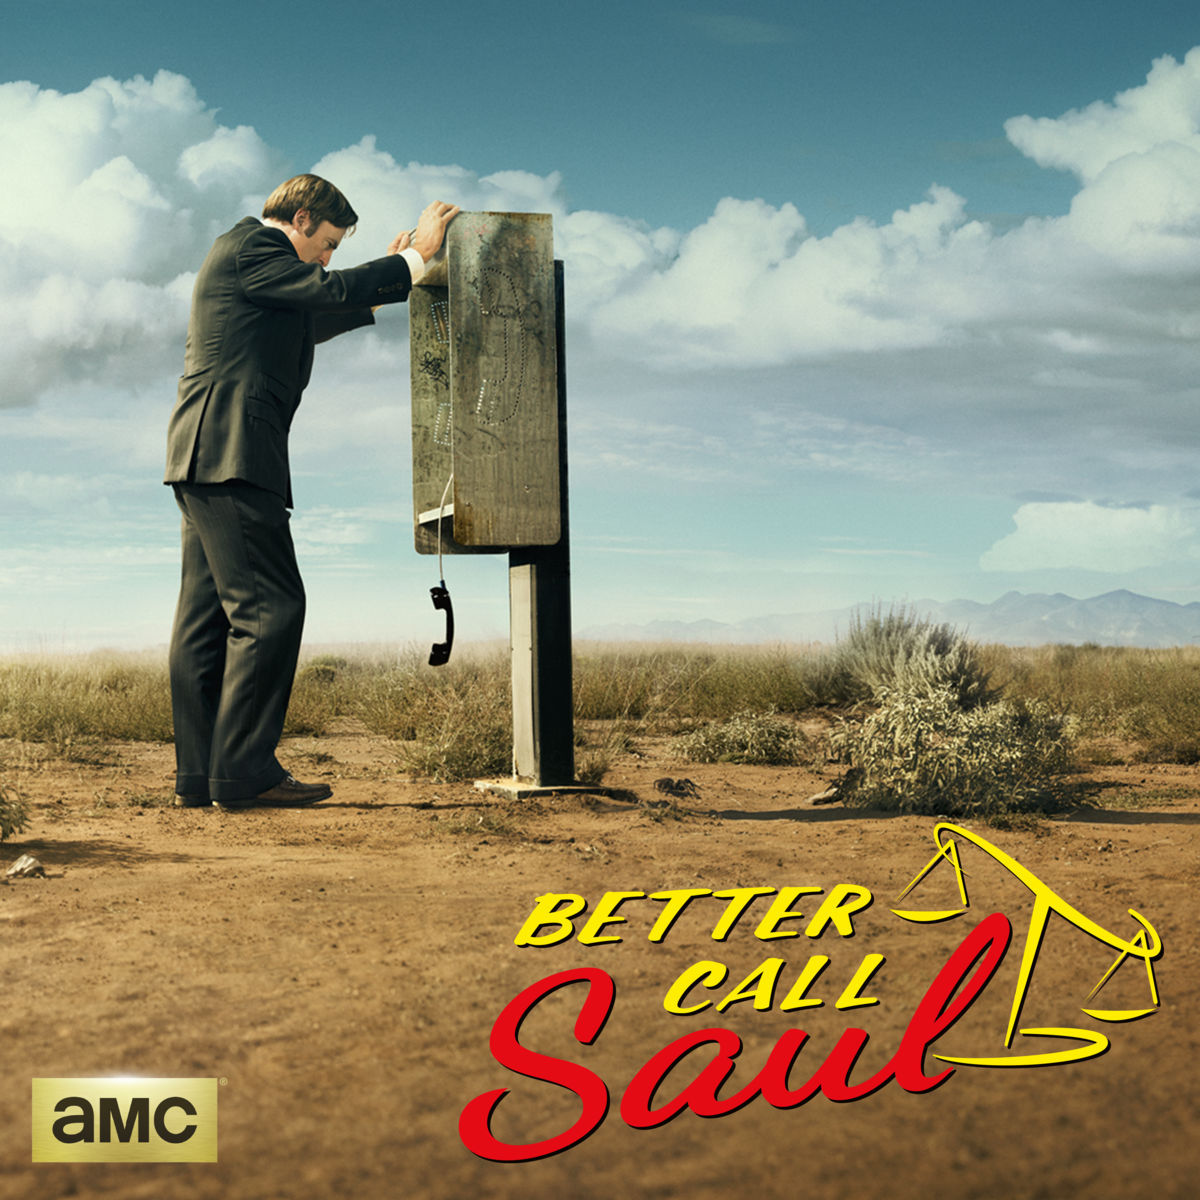 Better Call Saul, Season 1